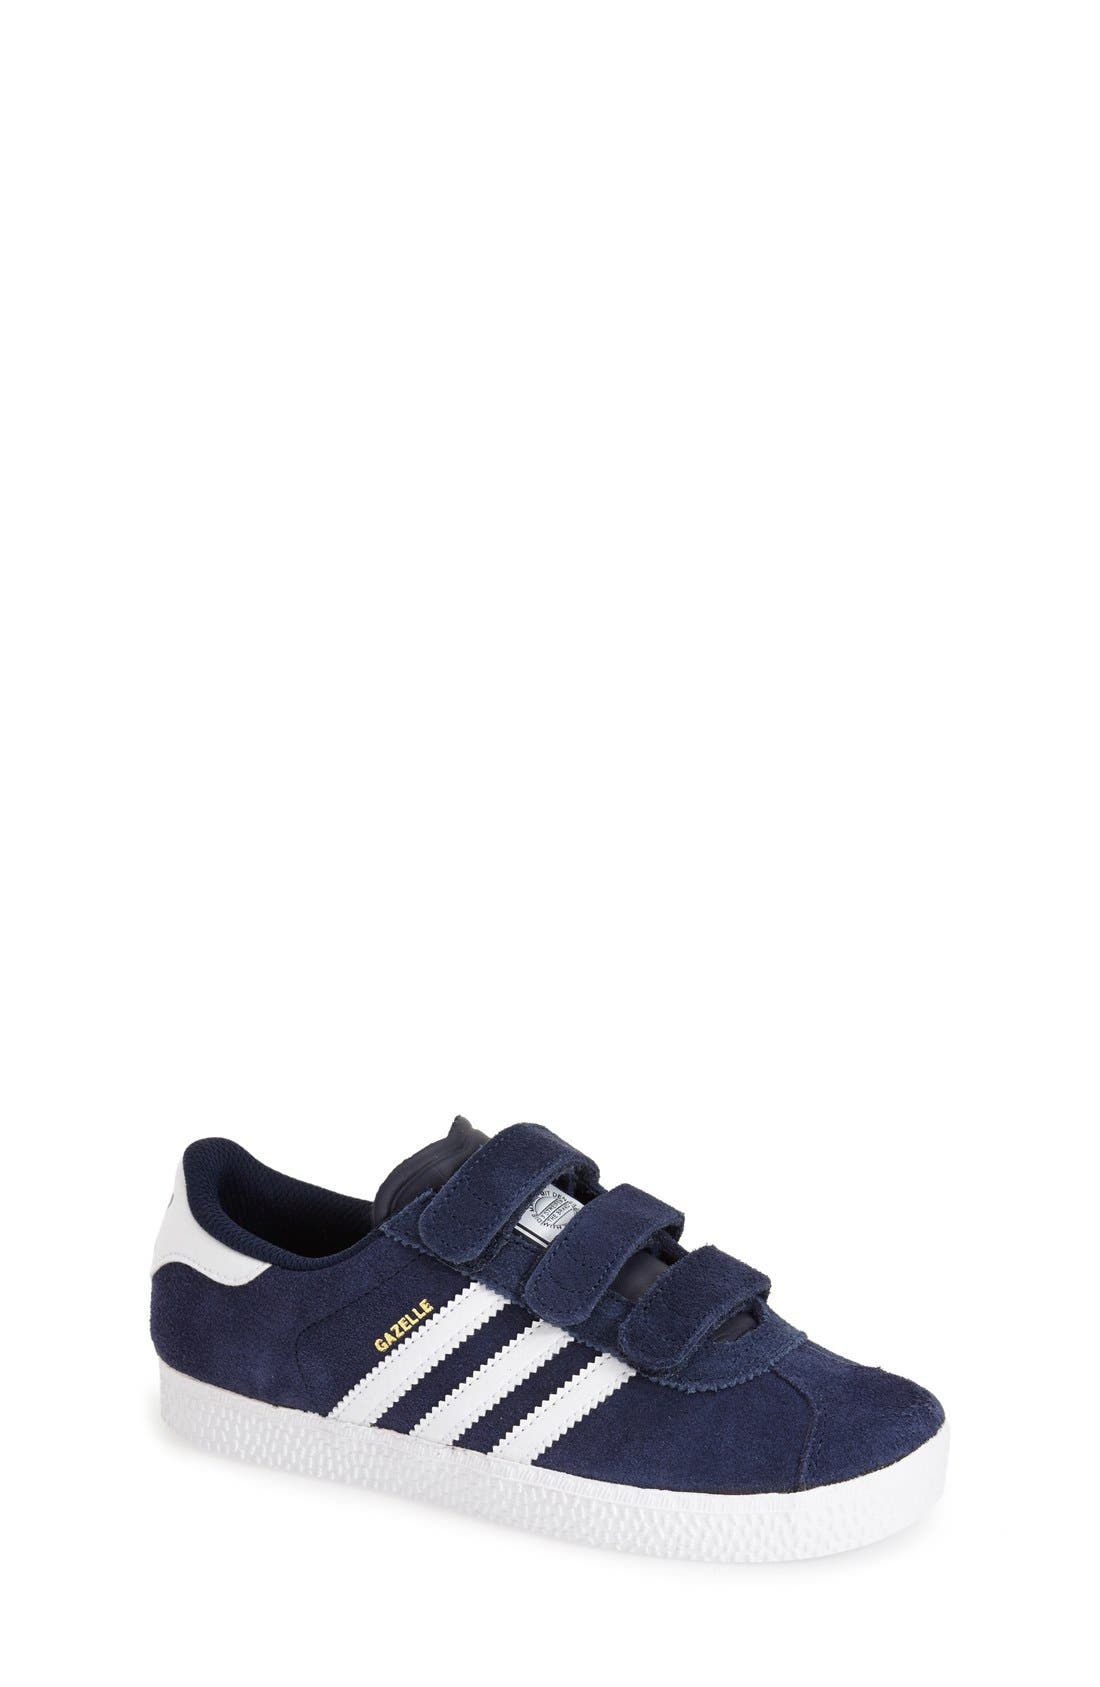 Main Image - adidas 'Gazelle' Sneaker (Toddler & Little Kid)